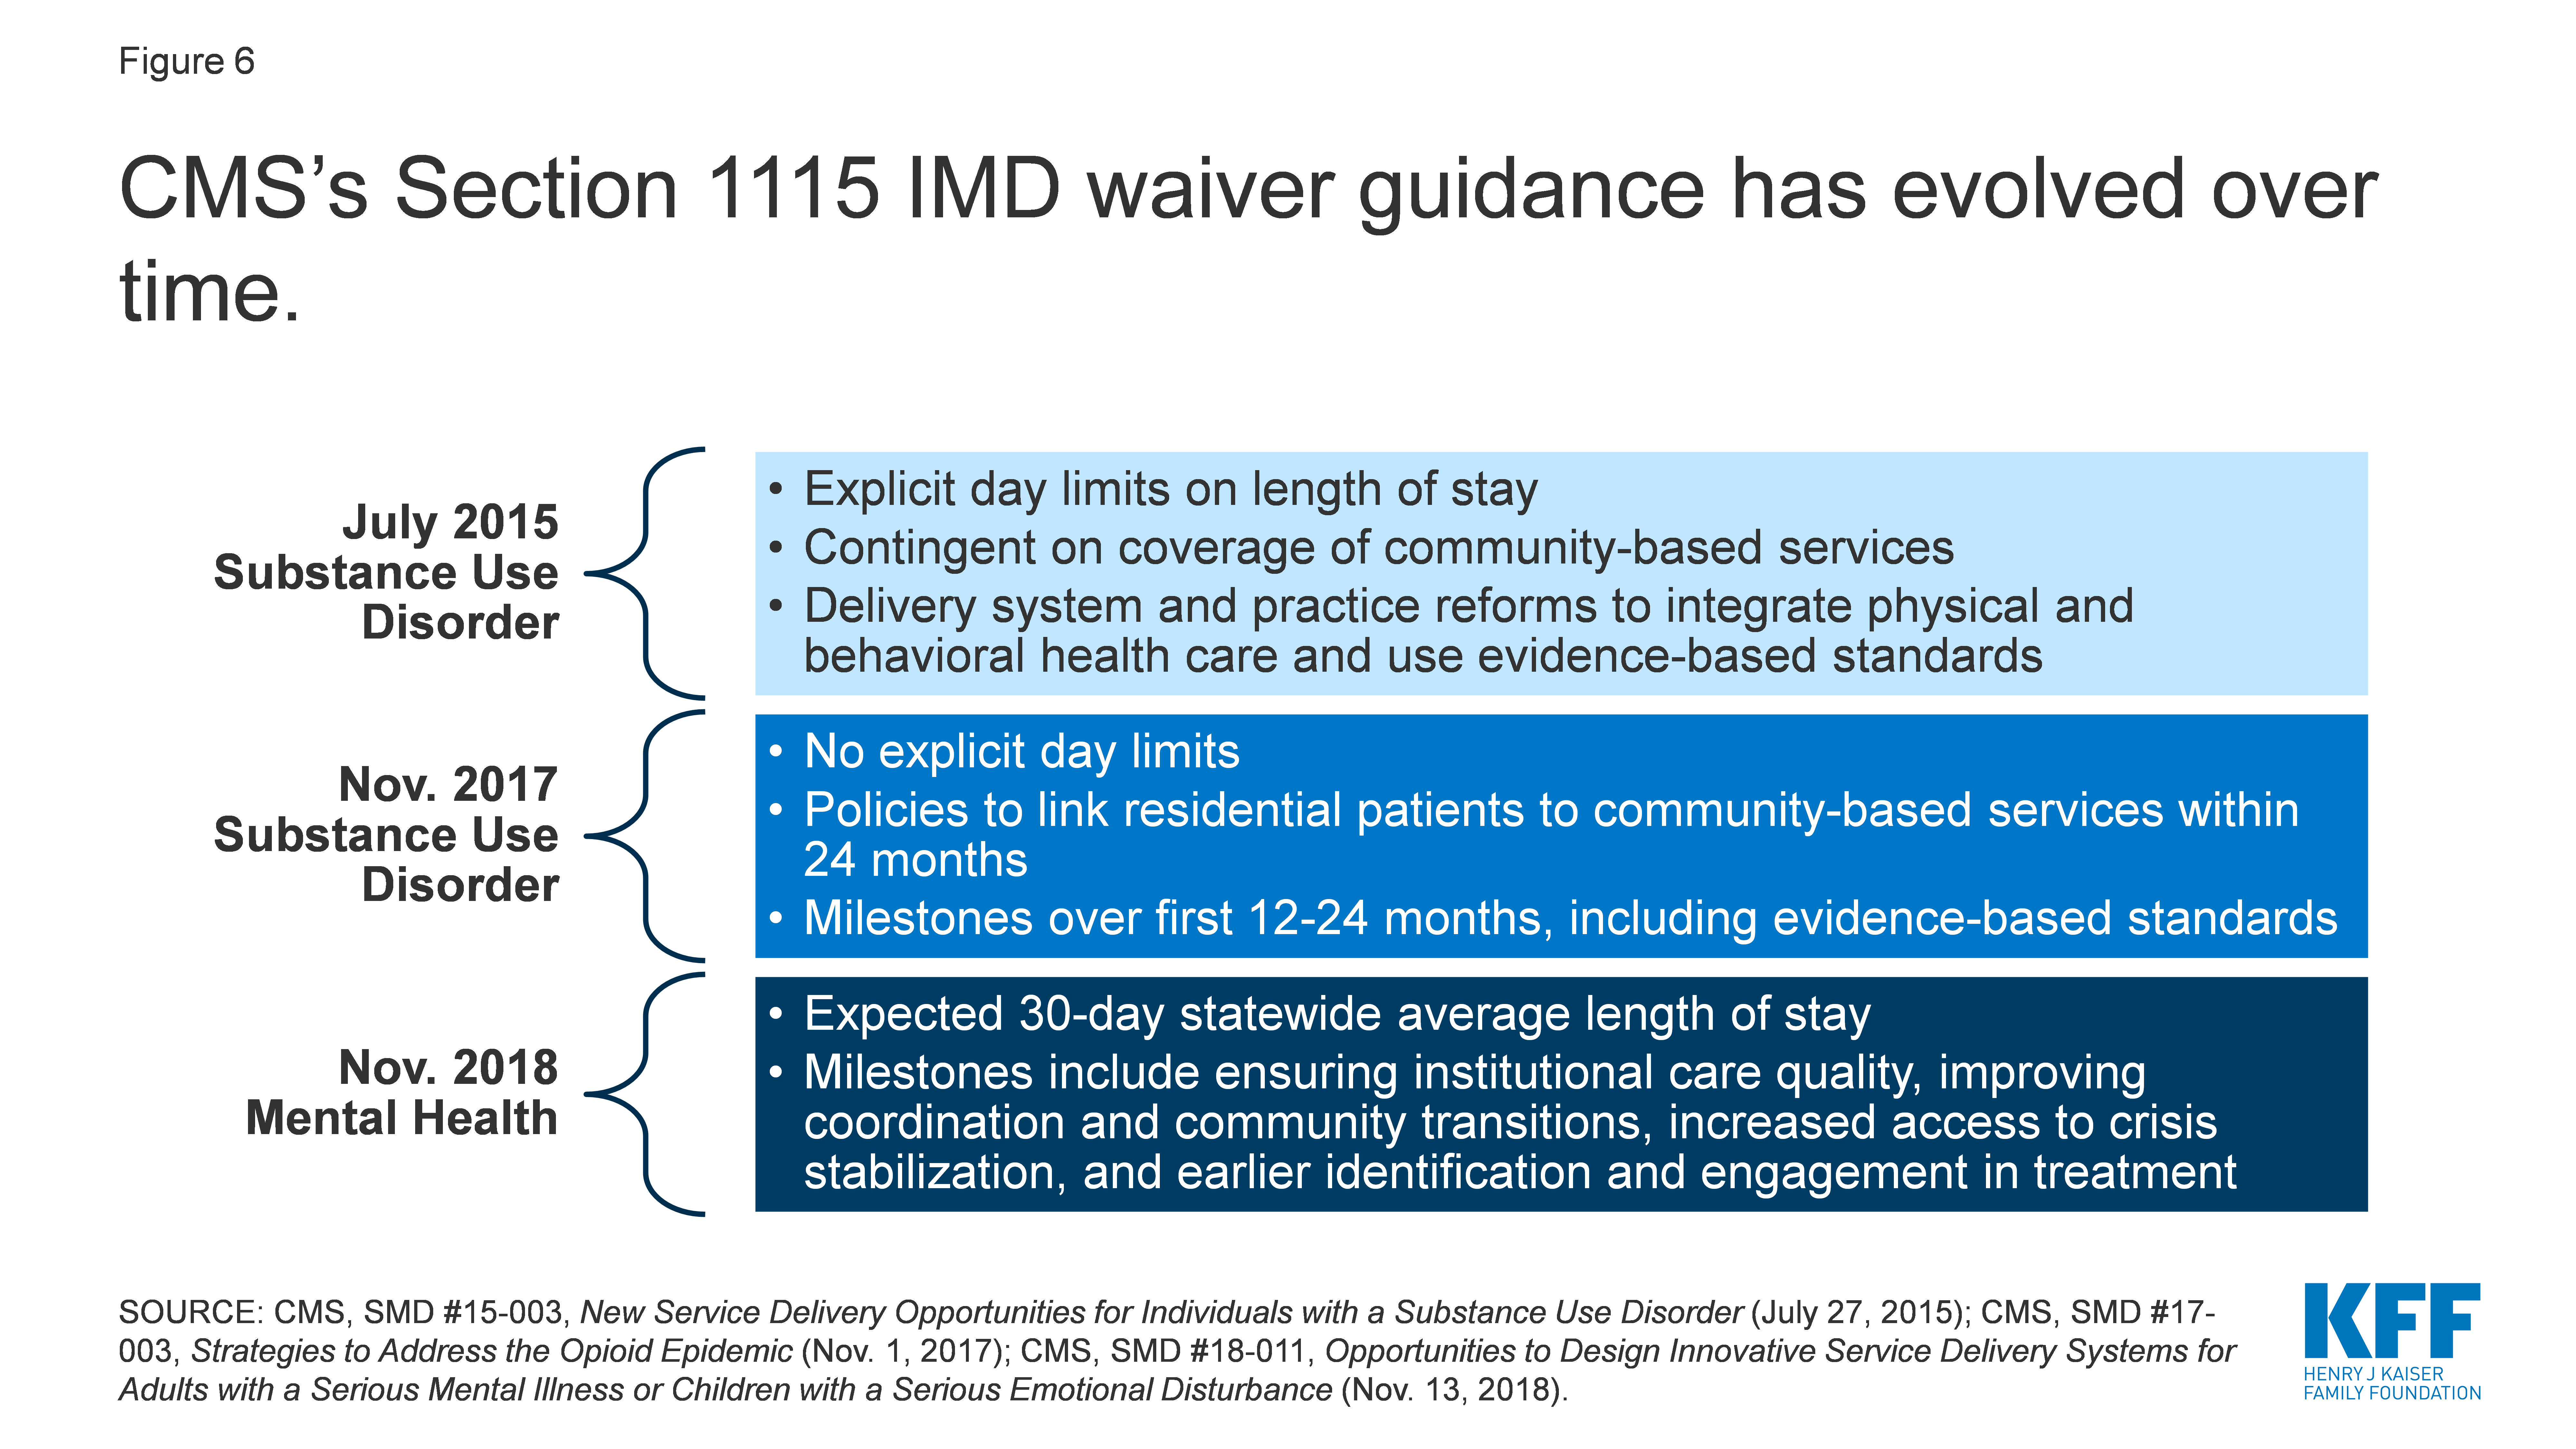 CMS's Section 1115 IMD waiver guidance has evolved over time